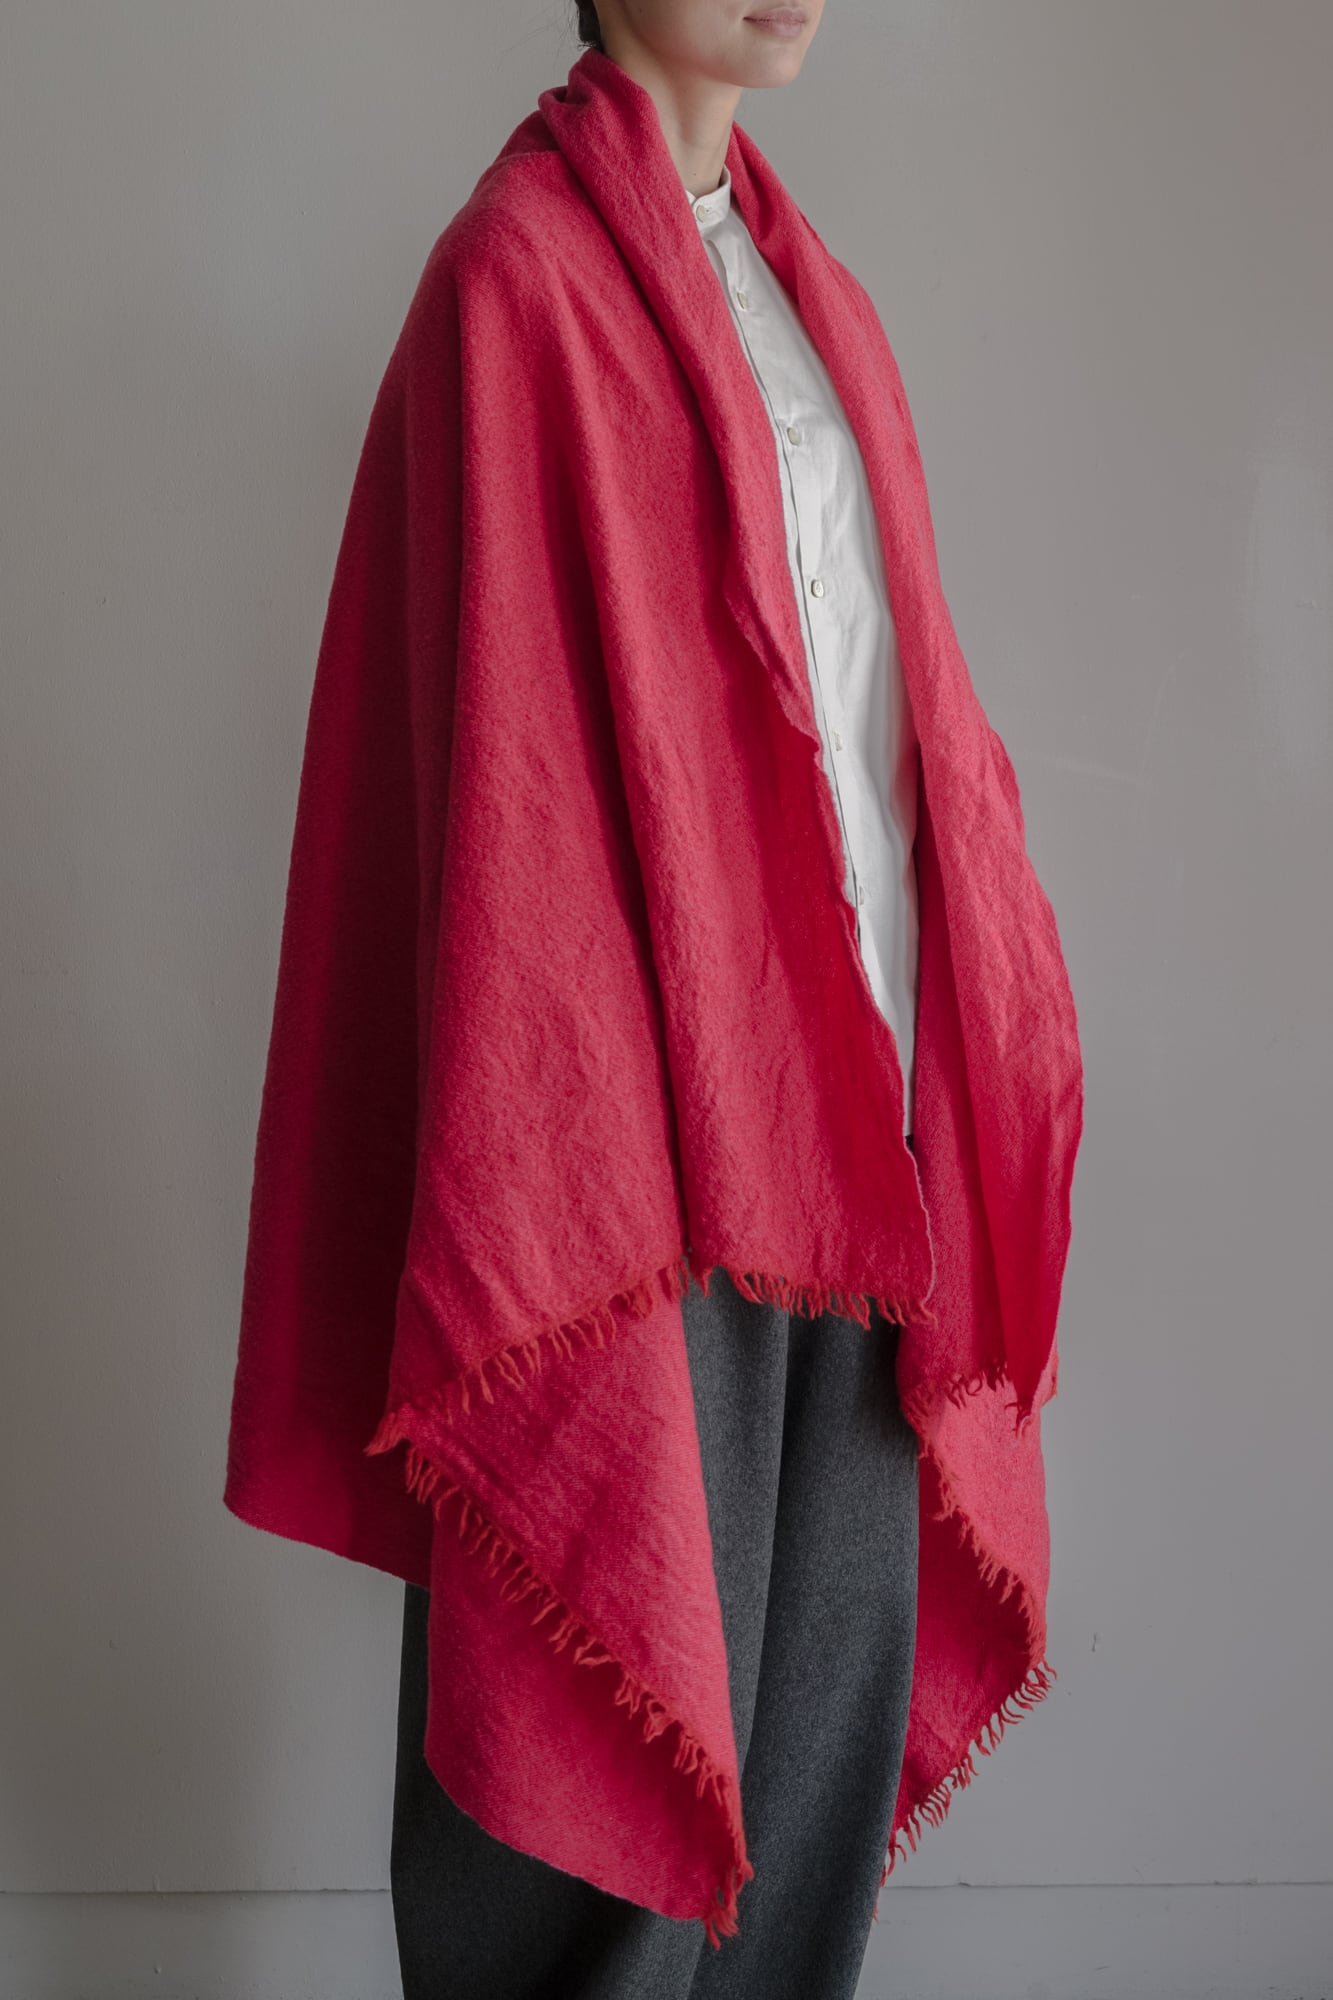 01601-4 chambray stole / red,pink